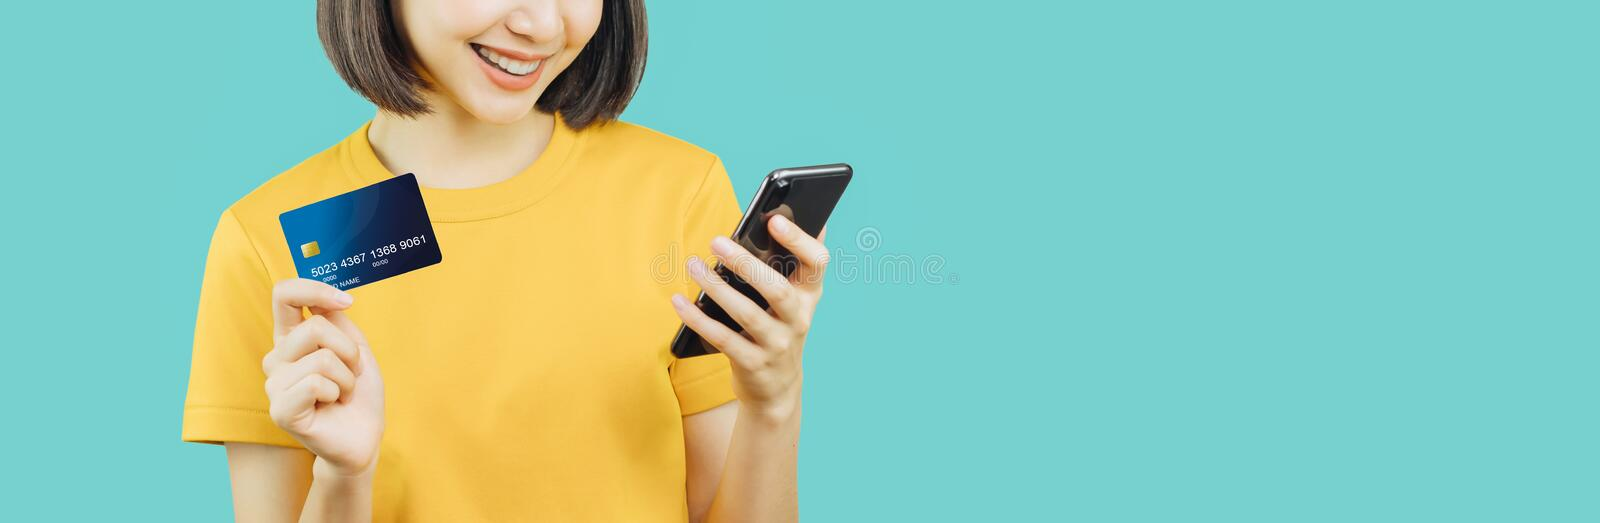 Happy smiling woman holding smart phone and credit card. Happy smiling woman holding smart phone and credit card with shopping online. copy space for put stock photos